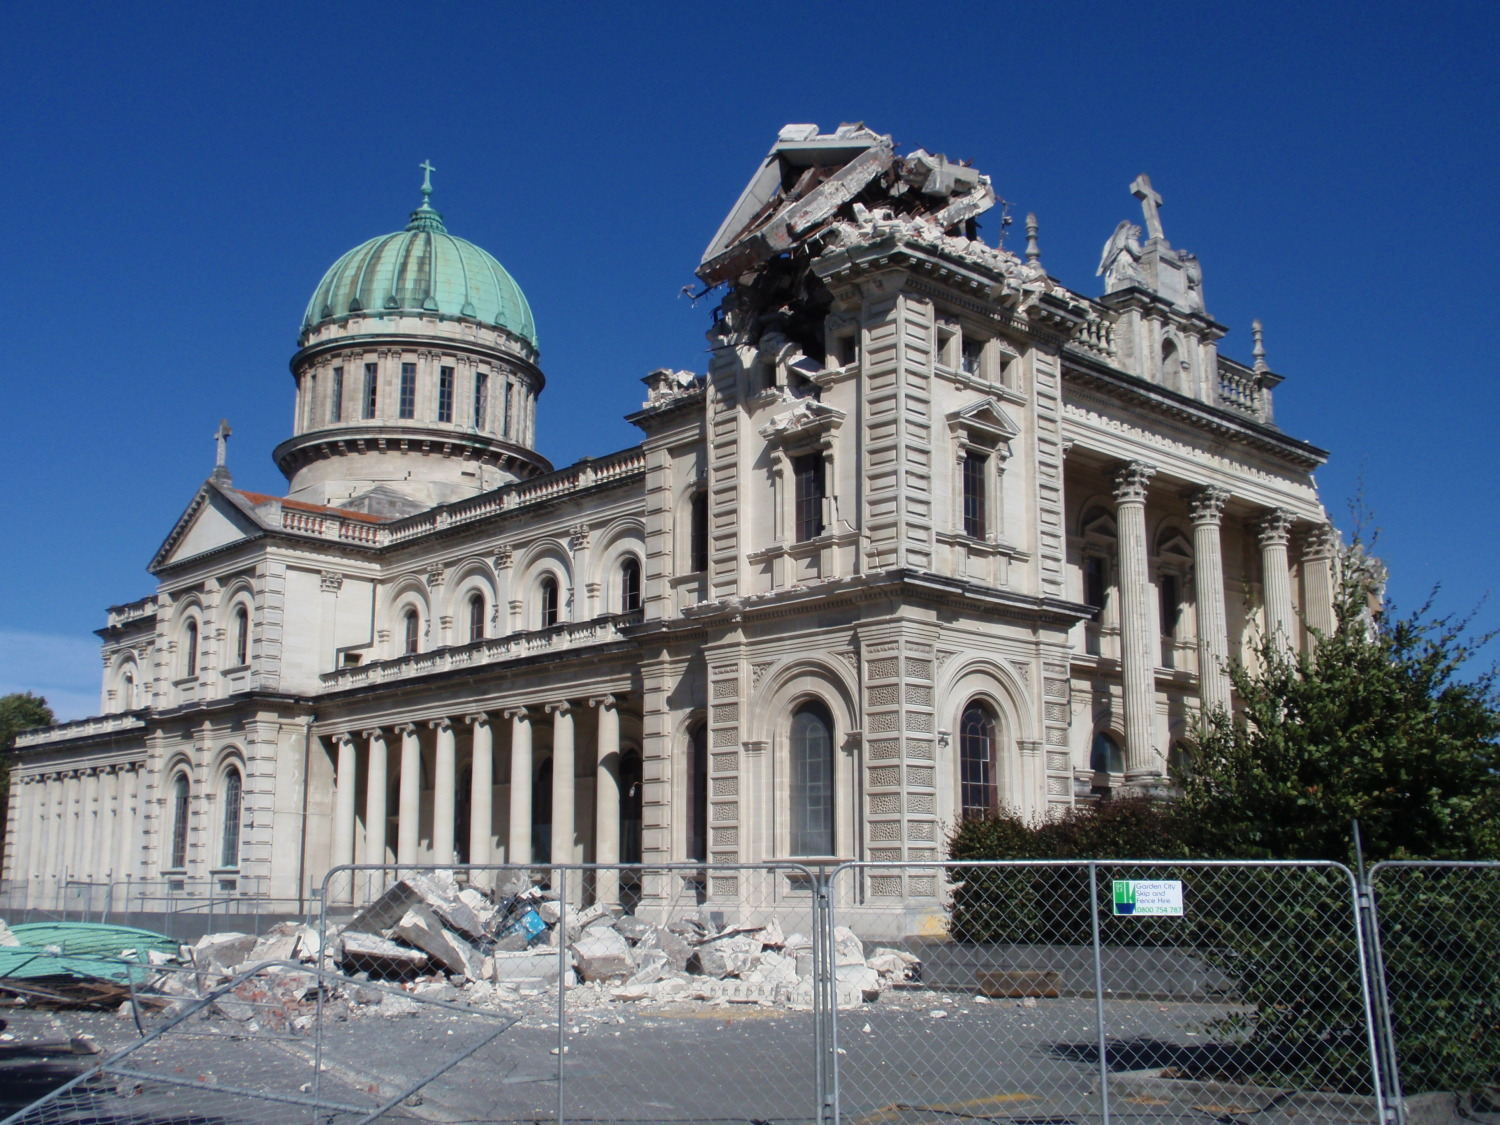 New Zealand Earthquake cathedral damage